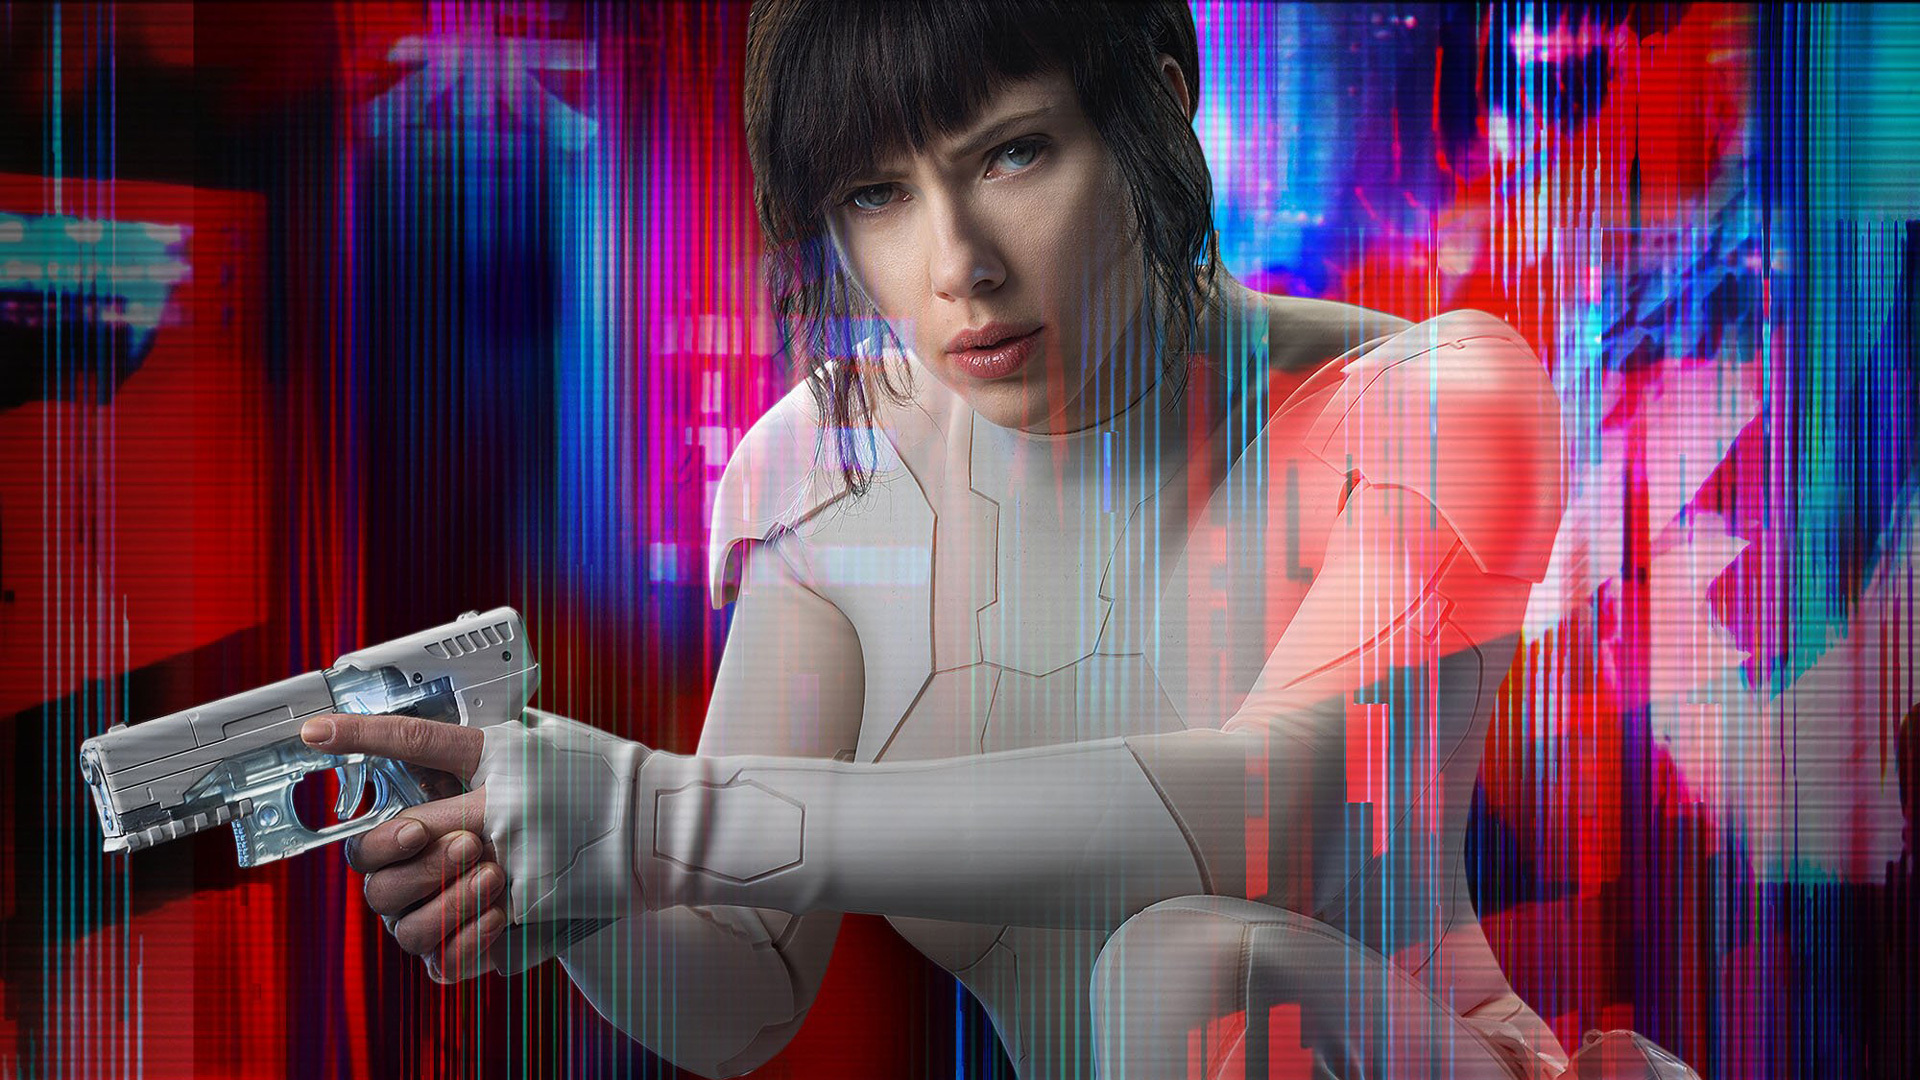 scarlett-johansson-ghost-in-the-shell-ad.jpg